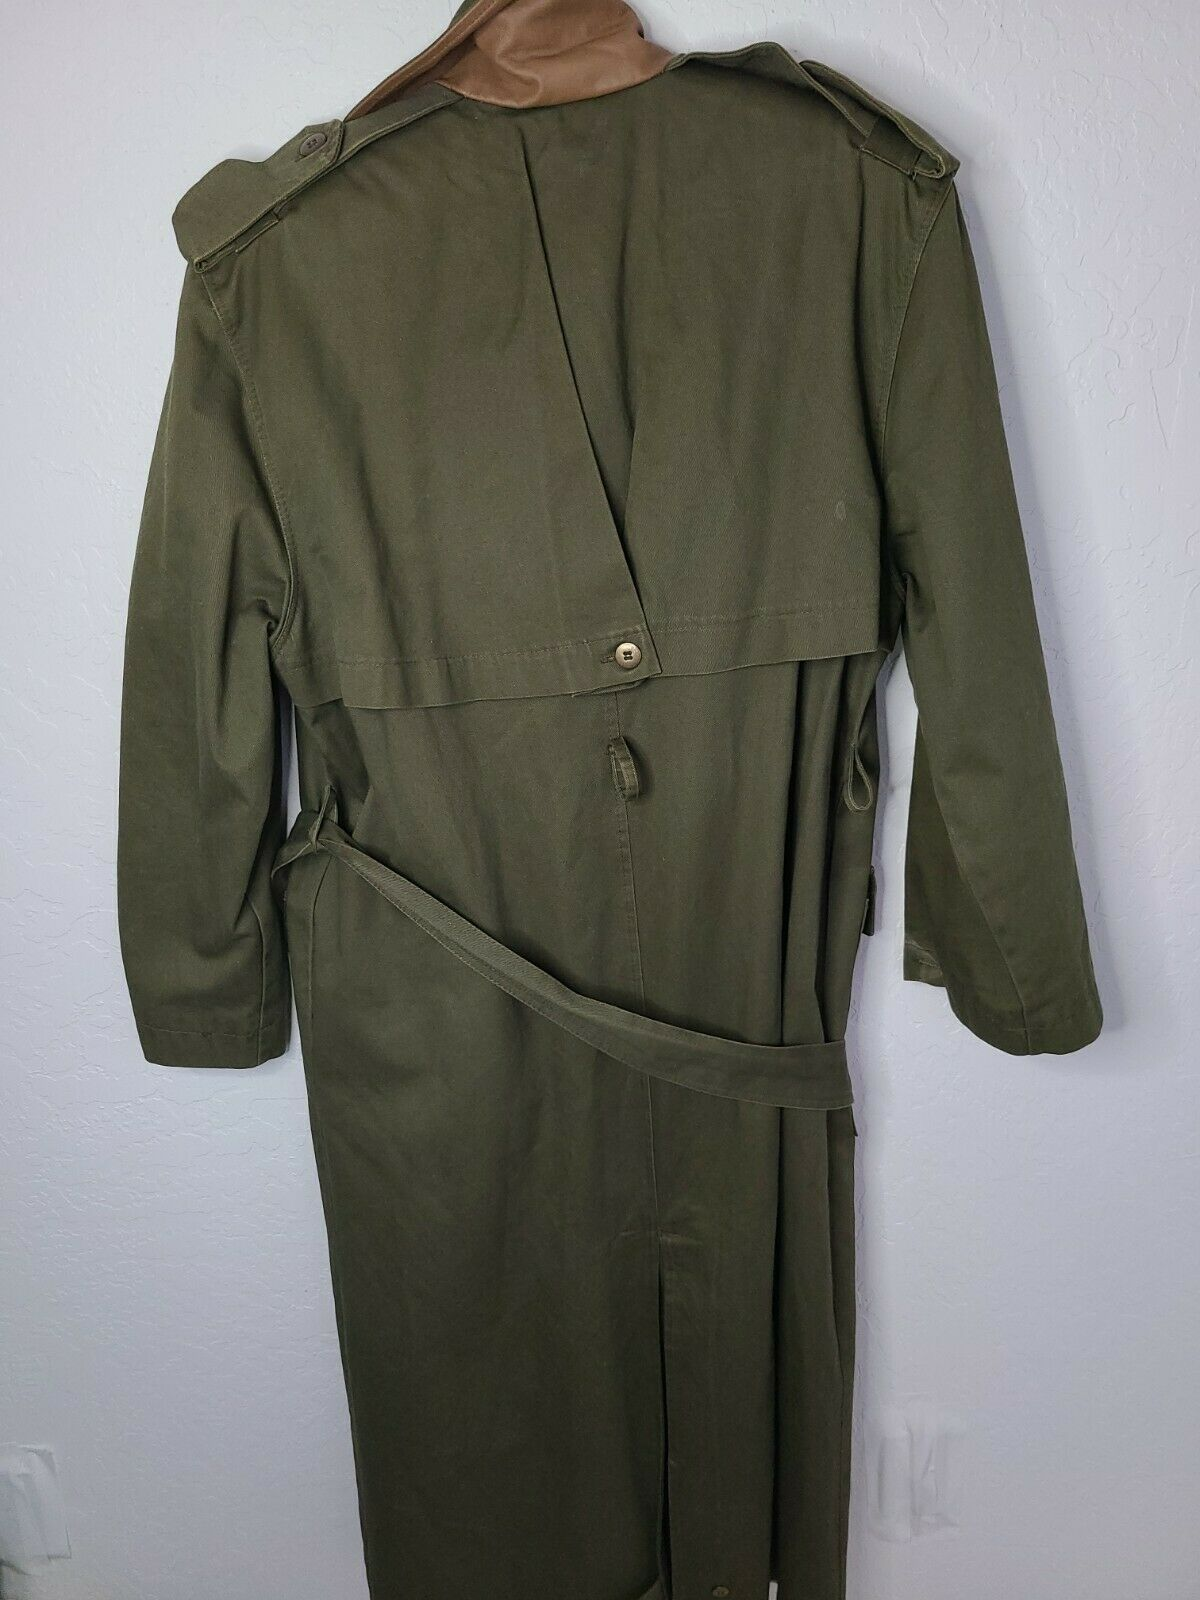 Classic Military Style Trench Coat, Olive Army Gr… - image 7